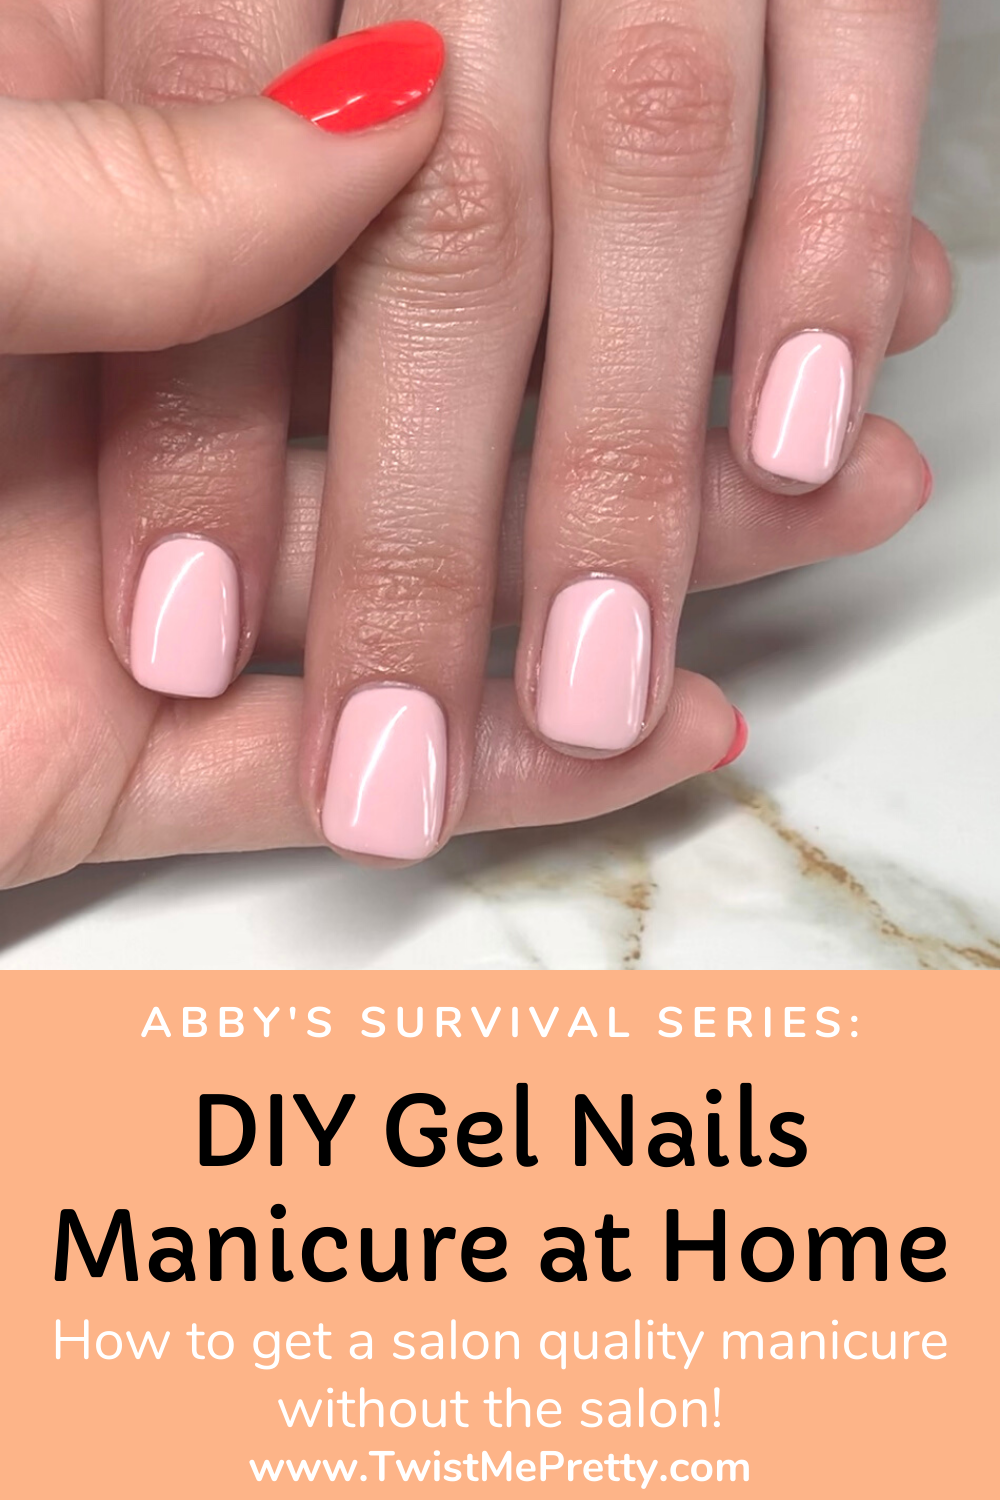 Abby's Survival Series- DIY Gel Nails Manicure at Home. www.TwistMePretty.com